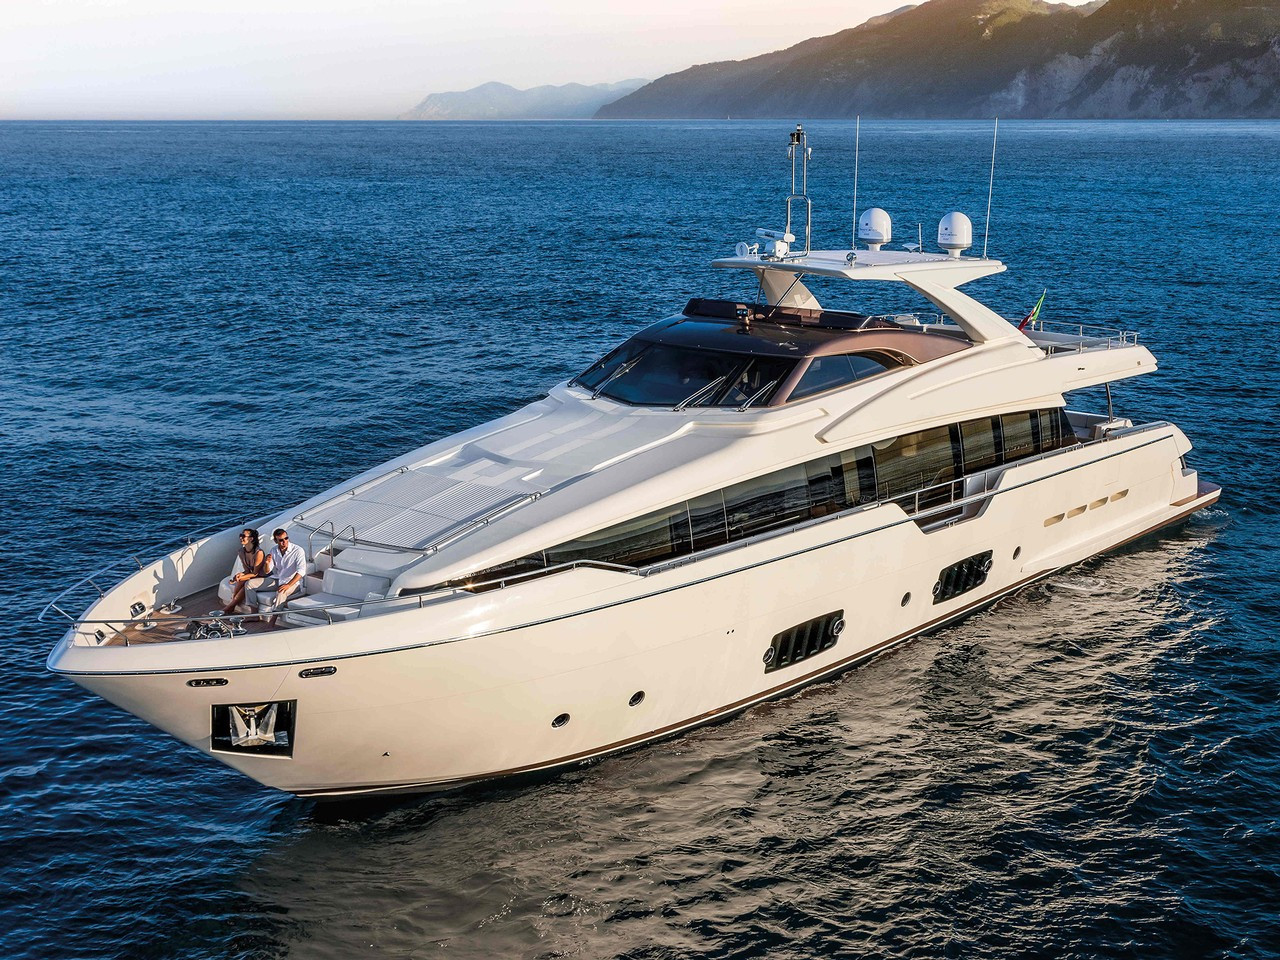 buy online 869be f87c5 Used Ferretti Yachts boat for sale on the French Riviera